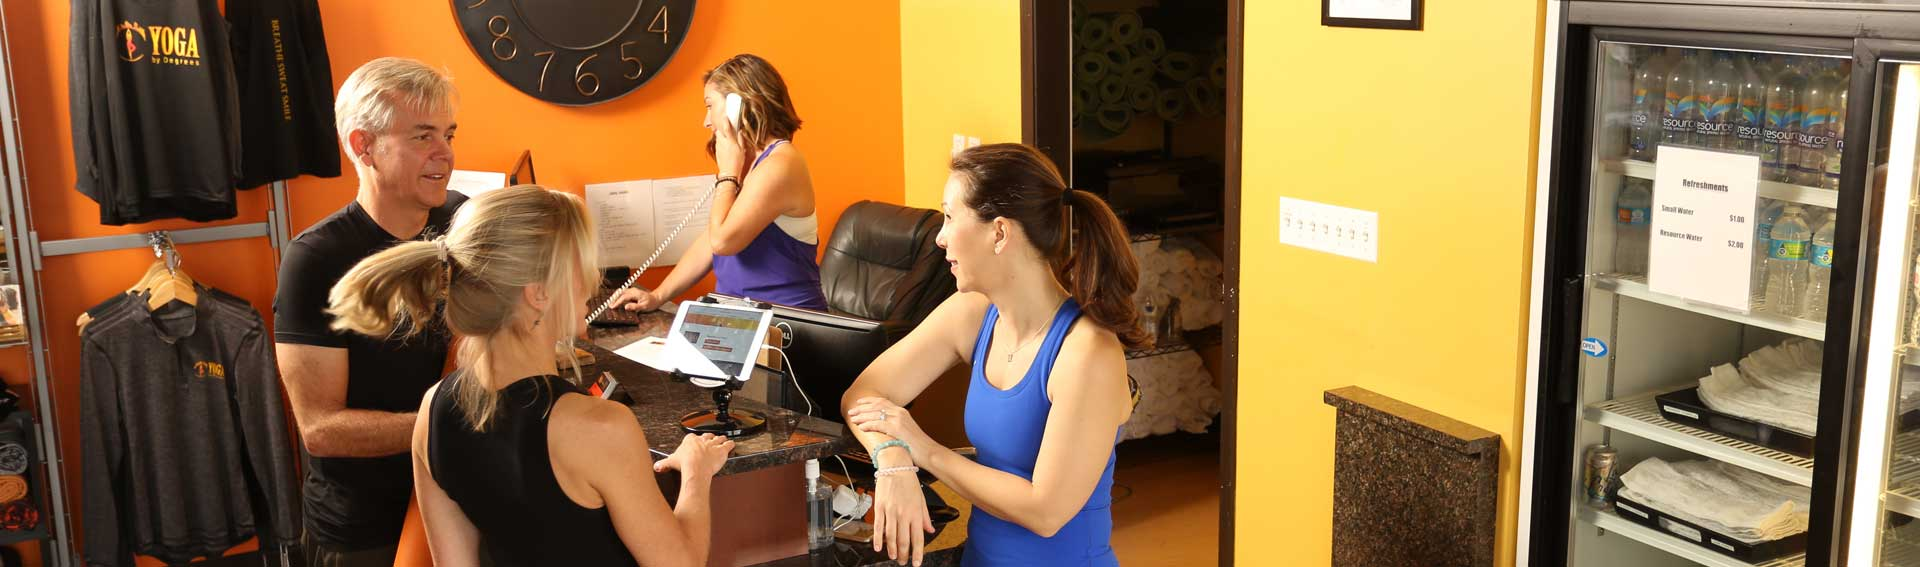 Yoga supply shop staff and customers